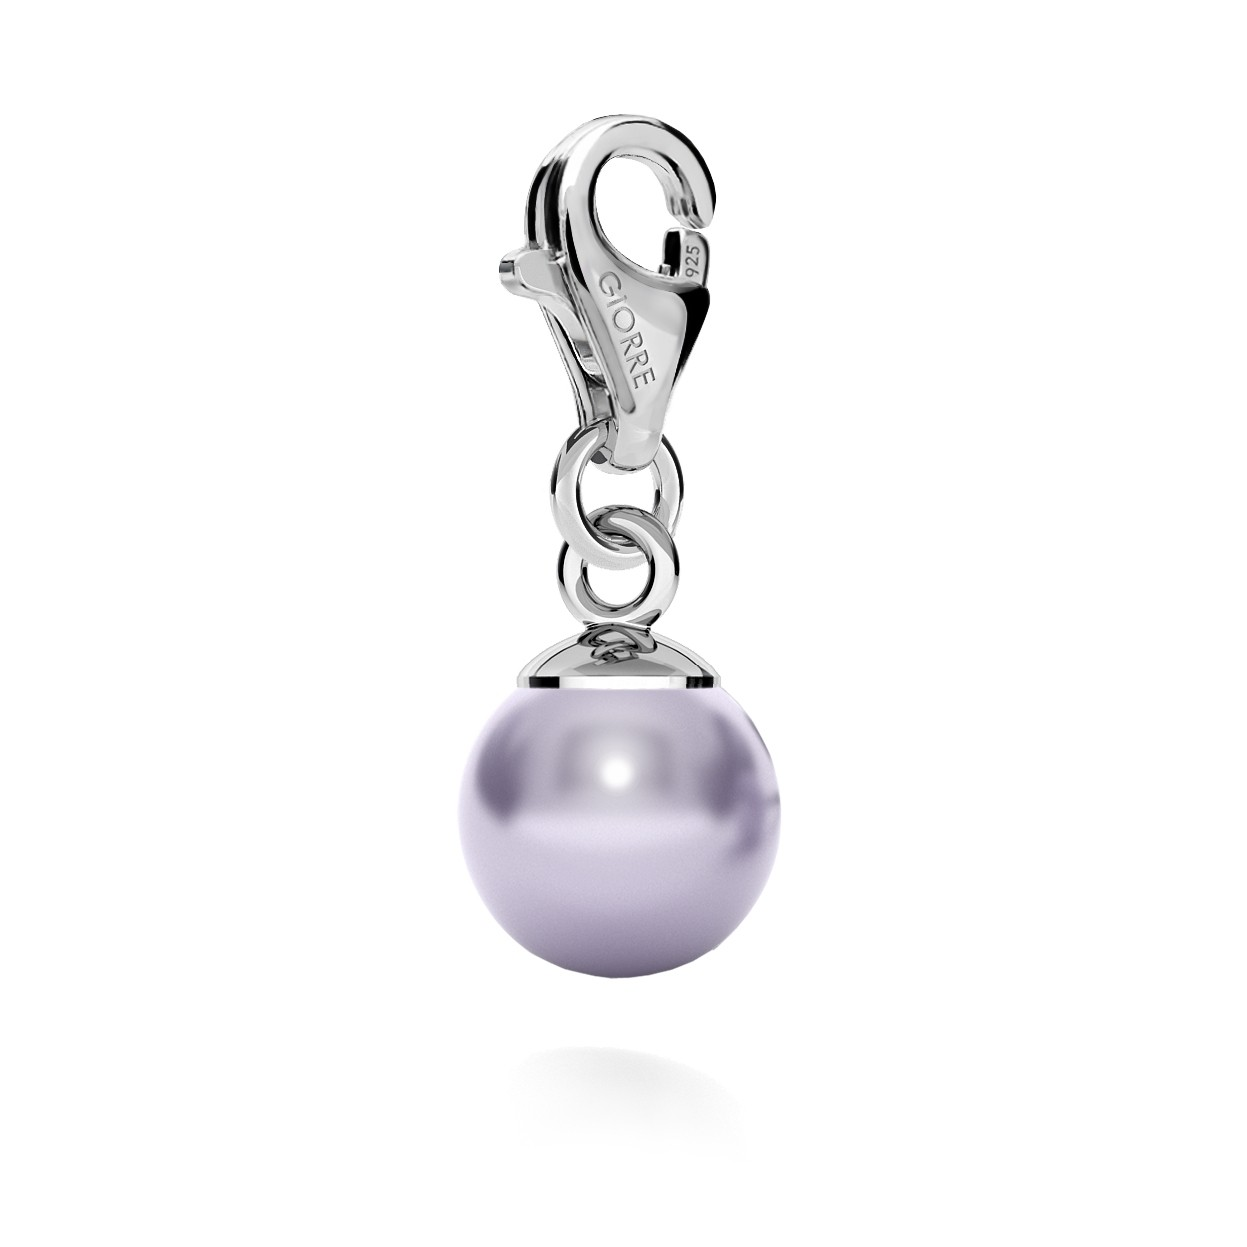 CHARM 119, PEARL, SWAROVSKI 5810 MM 8, STERLING SILVER (925) RHODIUM OR GOLD PLATE